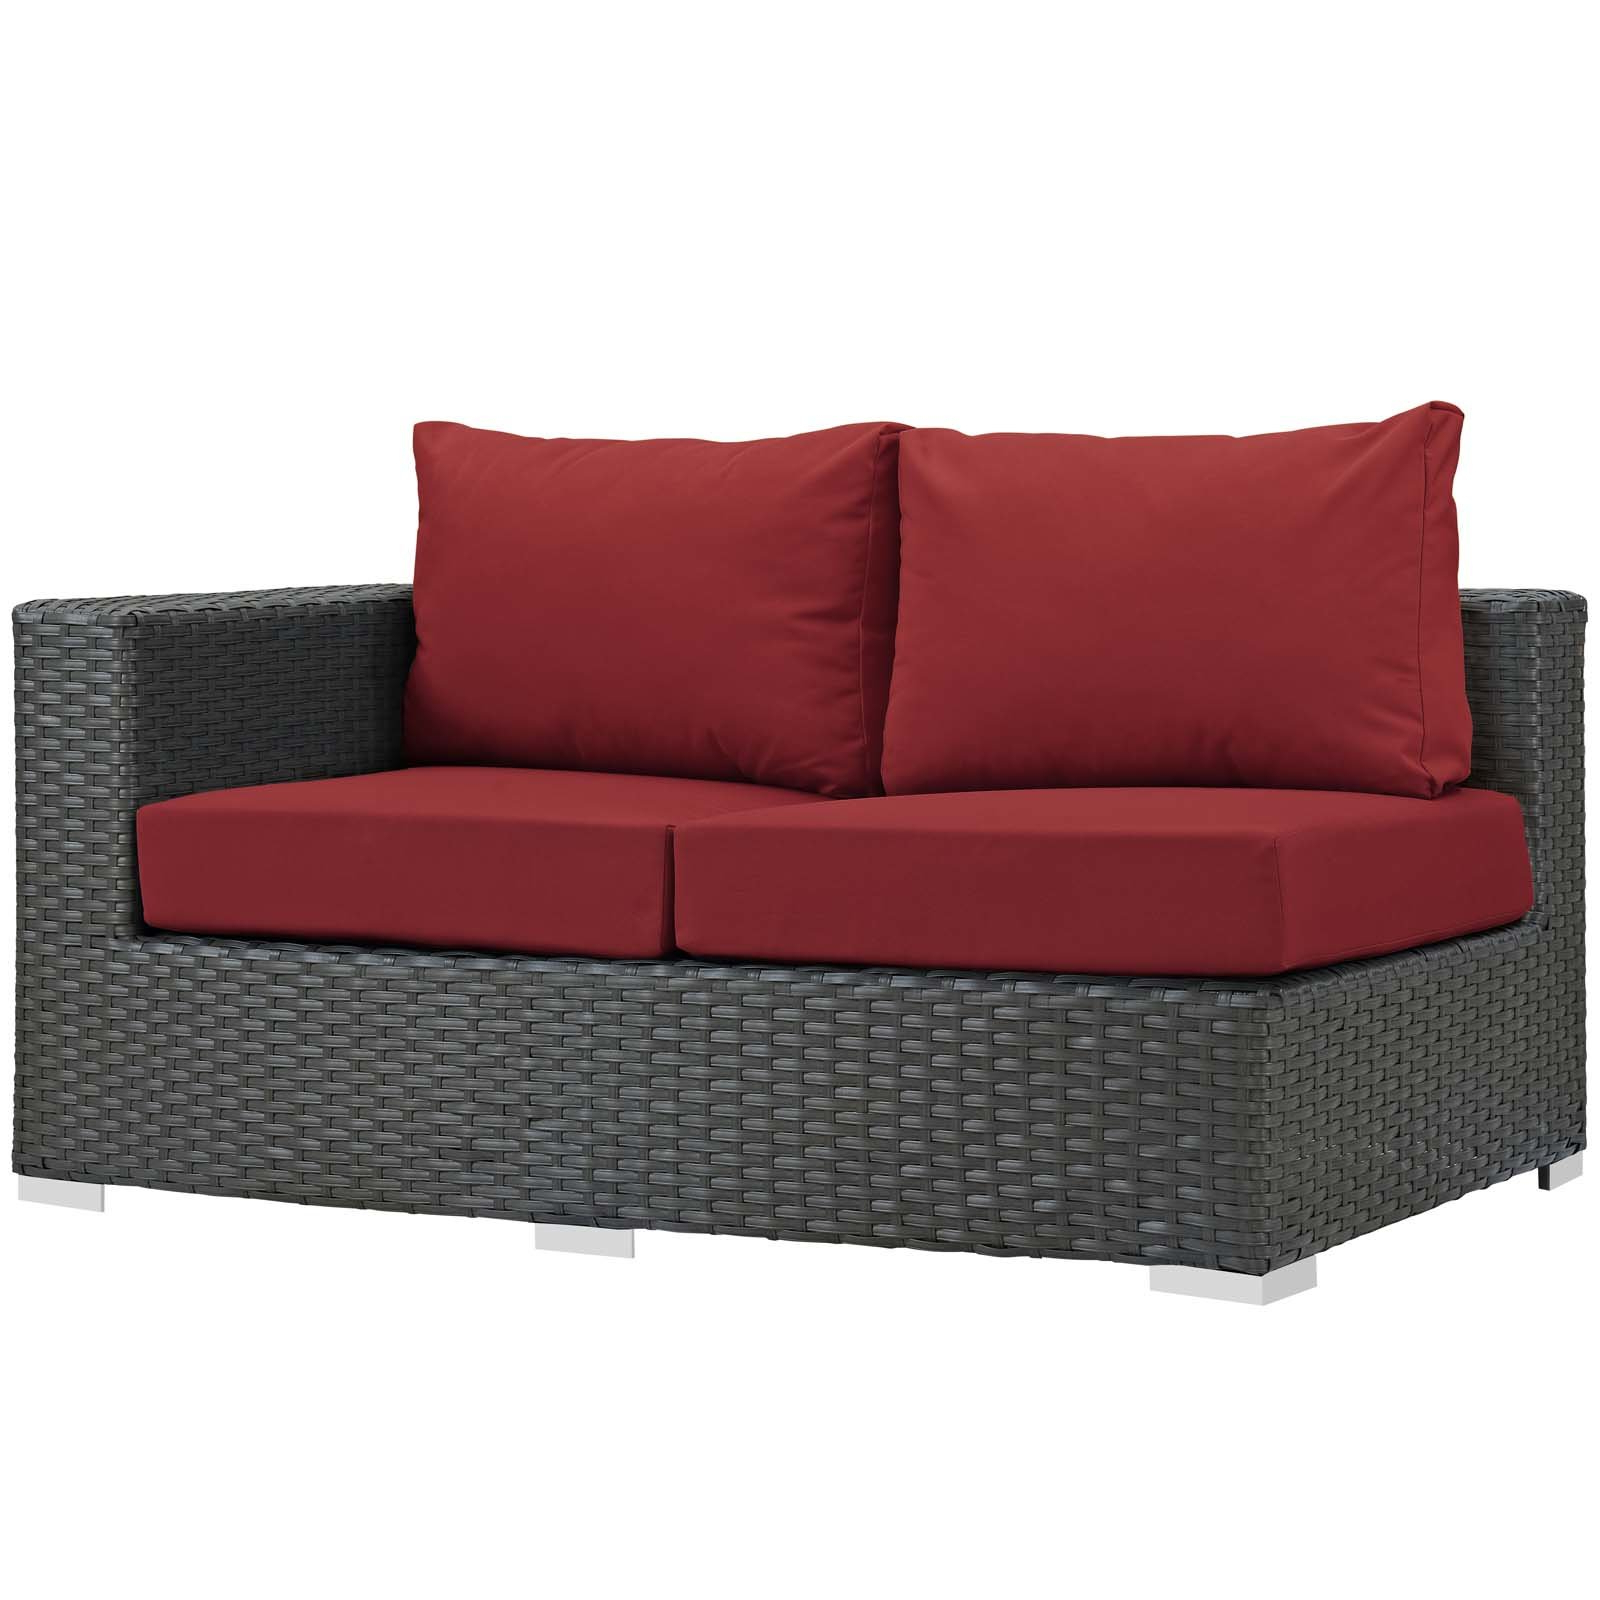 Latest Tripp Right Arm Loveseat Sectional Piece With Cushions Throughout Tripp Loveseats With Cushions (View 3 of 20)